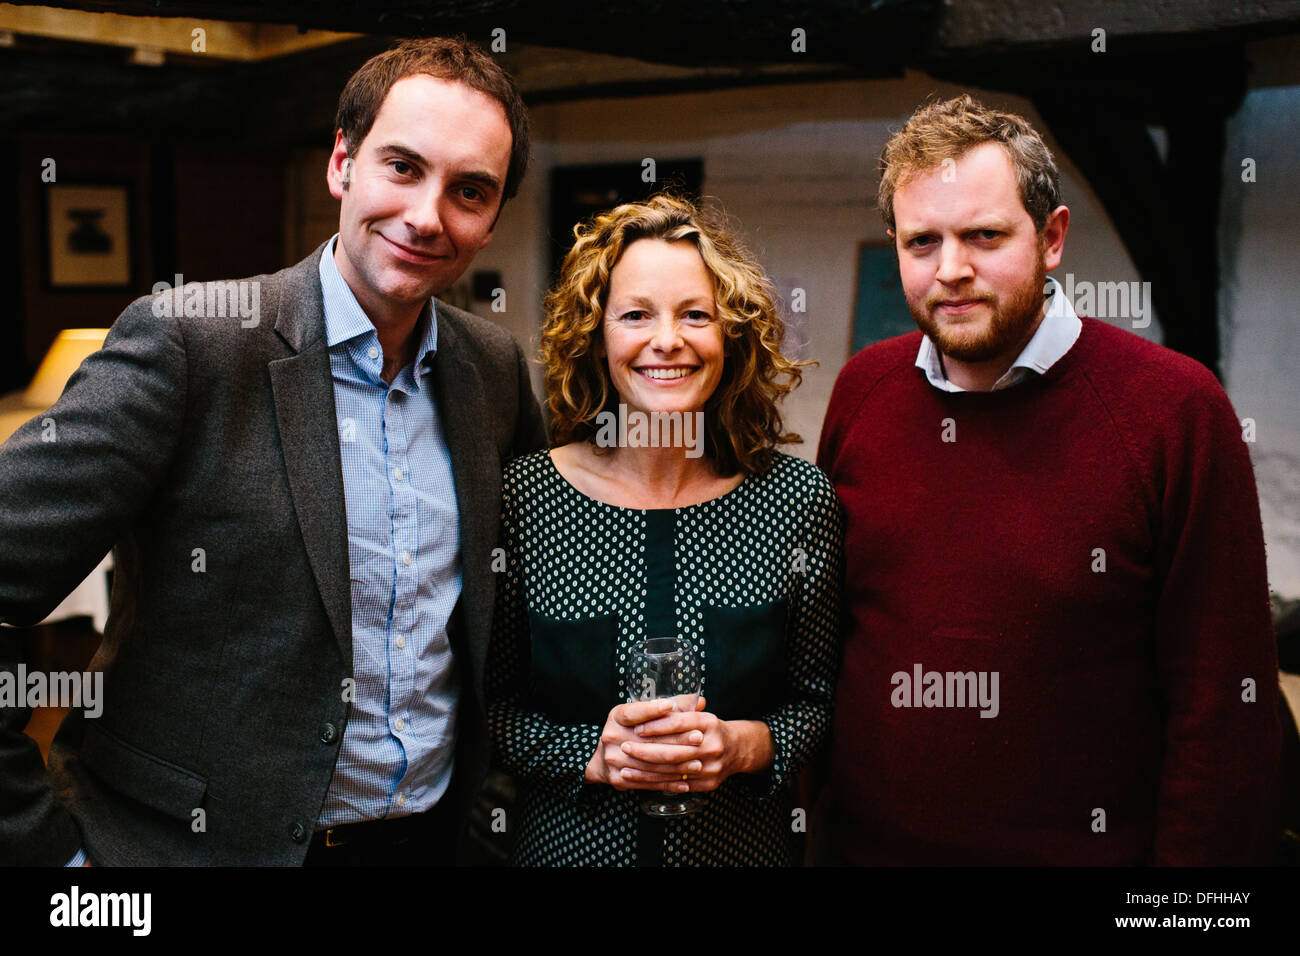 Dougie Anderson & Kate Humble & Miles Jupp - Stock Image